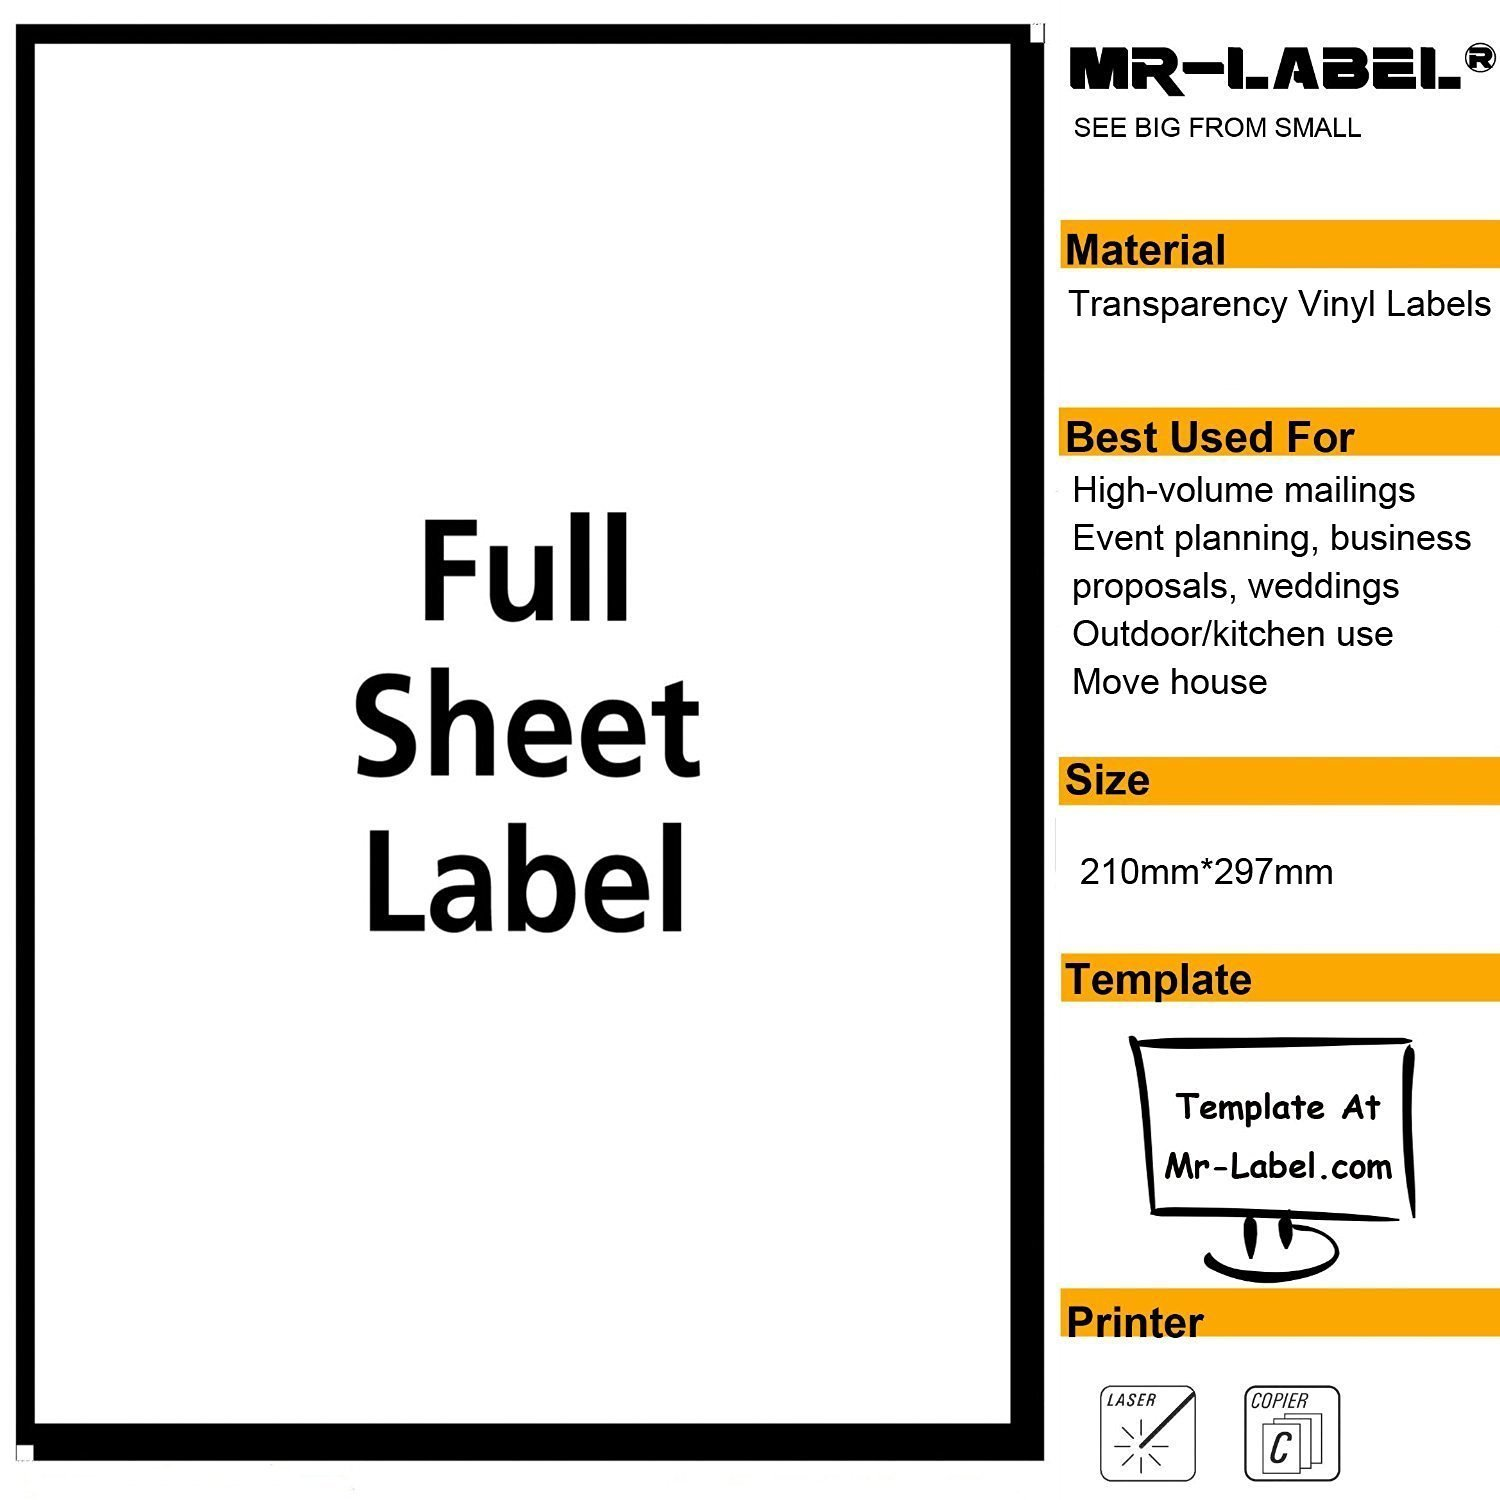 Mr label extra large clear full sheet strong adhesive labels transparent tear resistant waterproof stickers for kitchen use manufacturing and storage